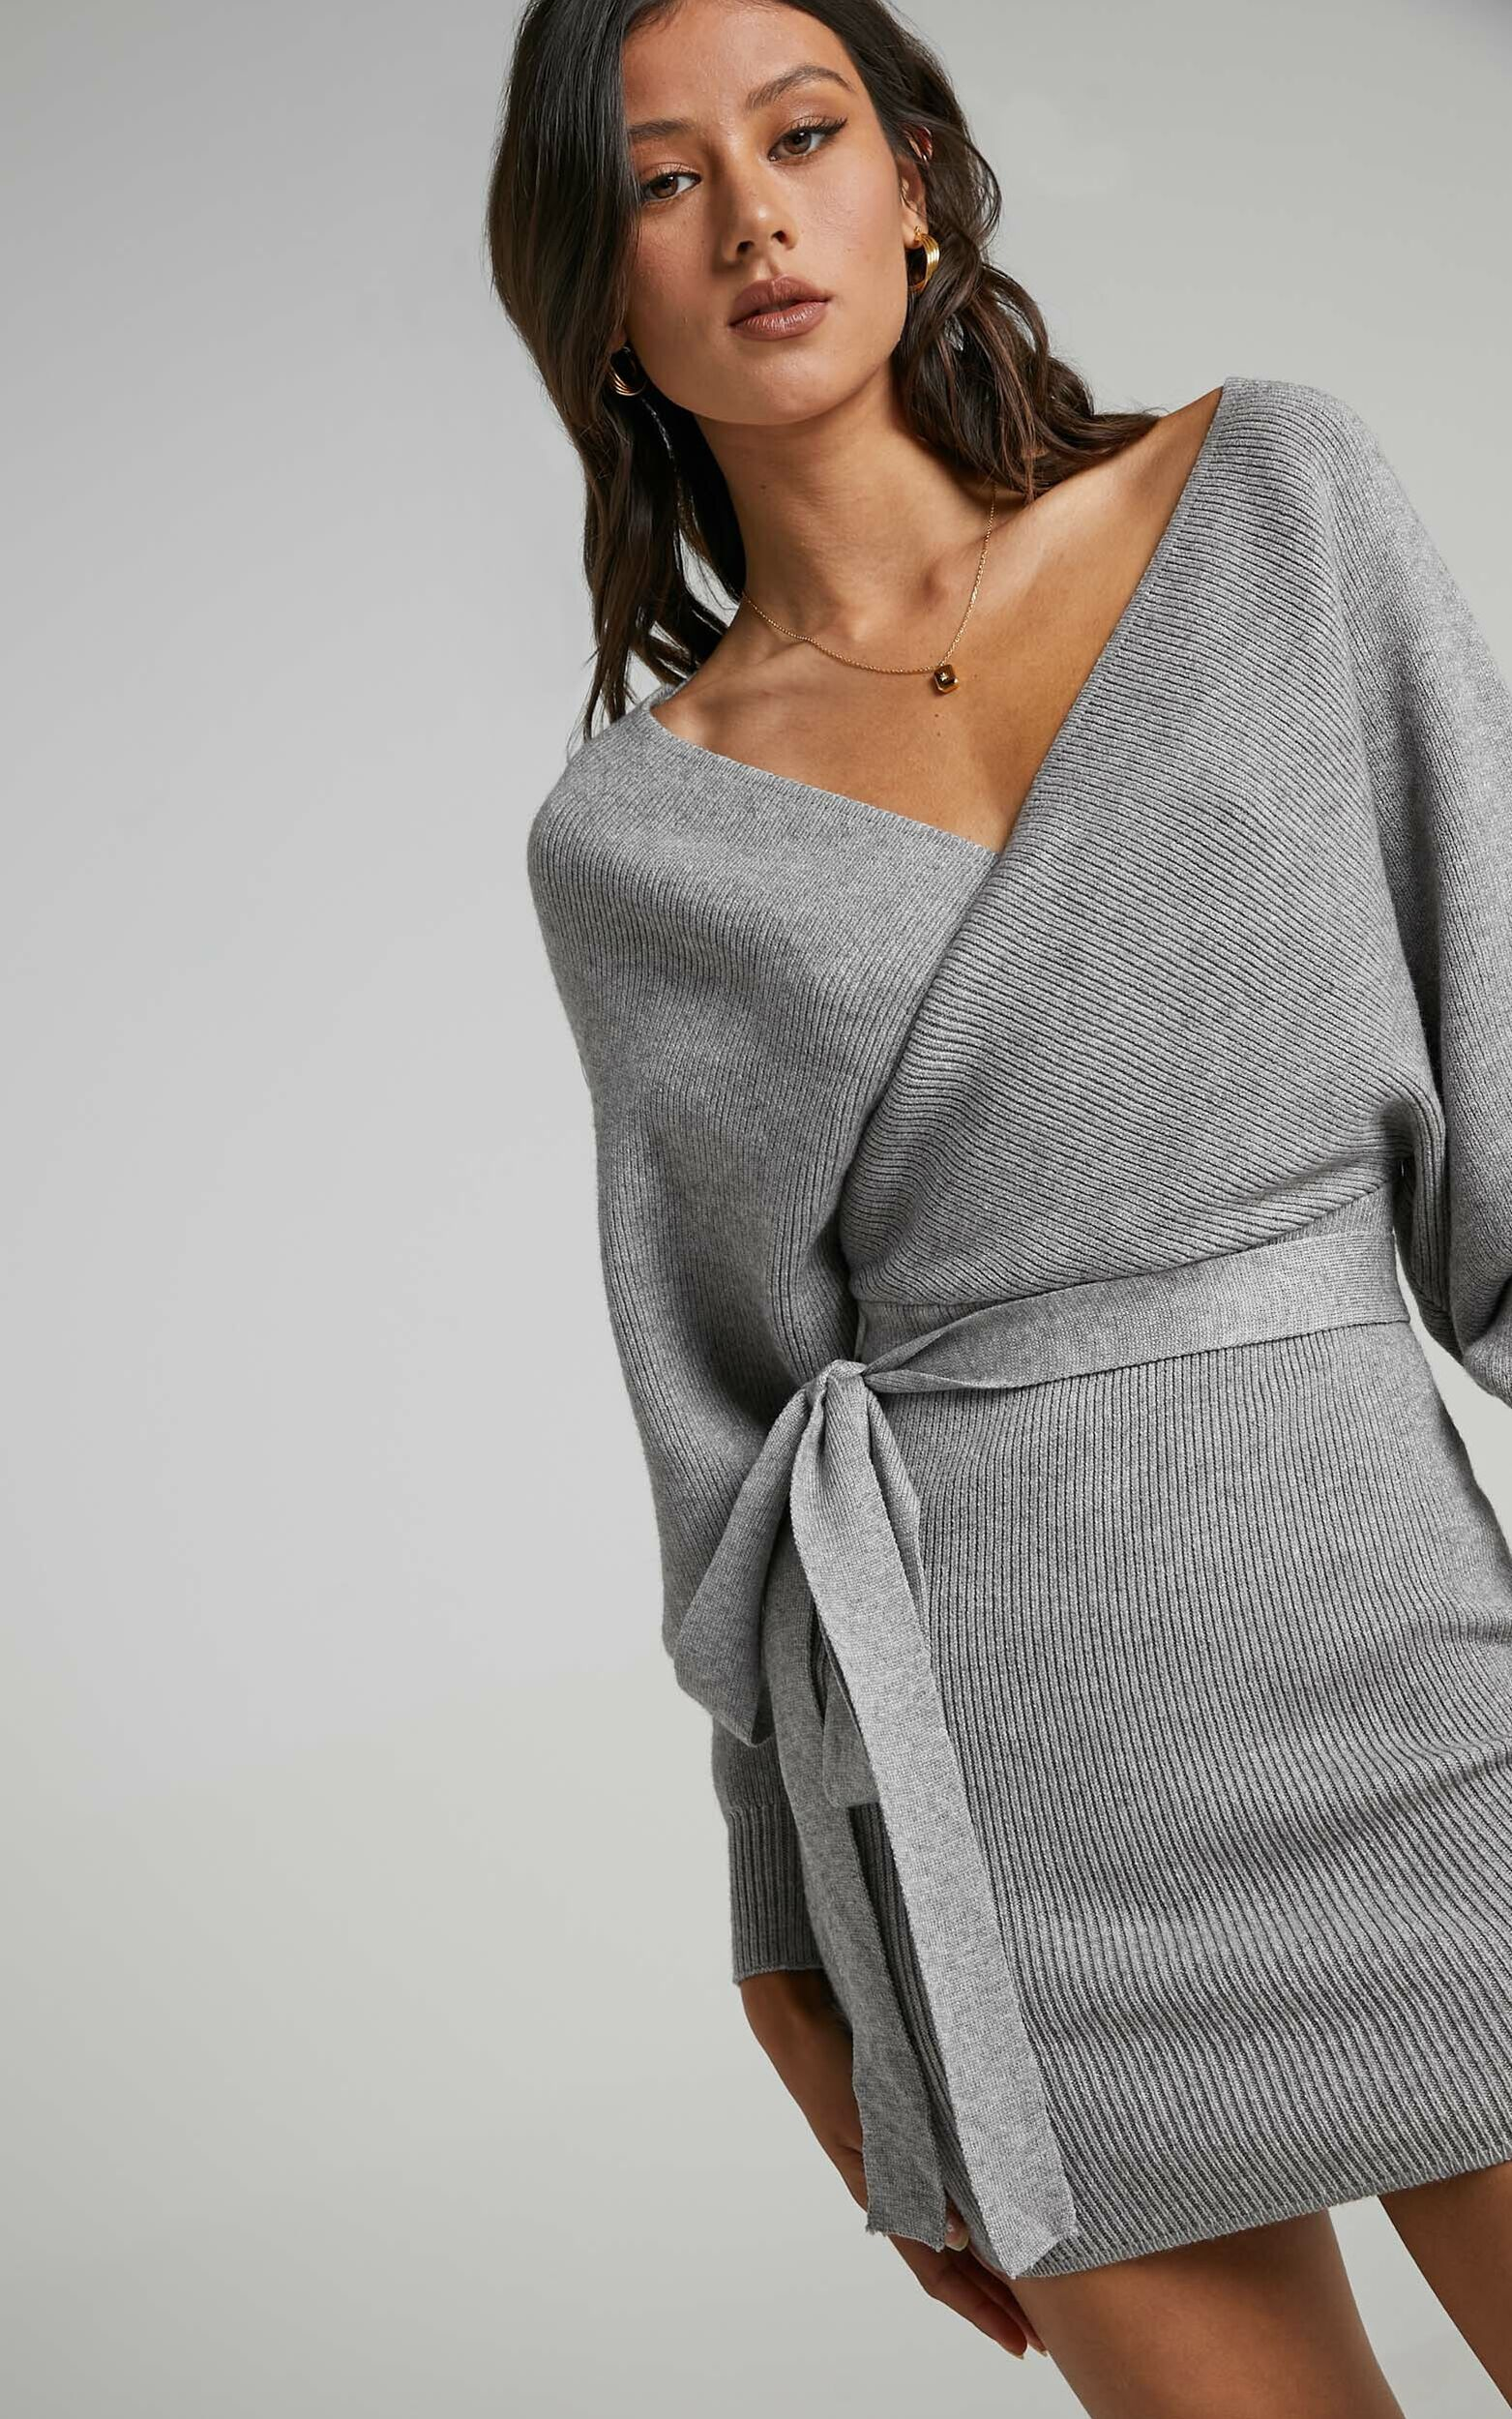 Dont Fall Down Knit Dress in Grey - 06, GRY2, super-hi-res image number null